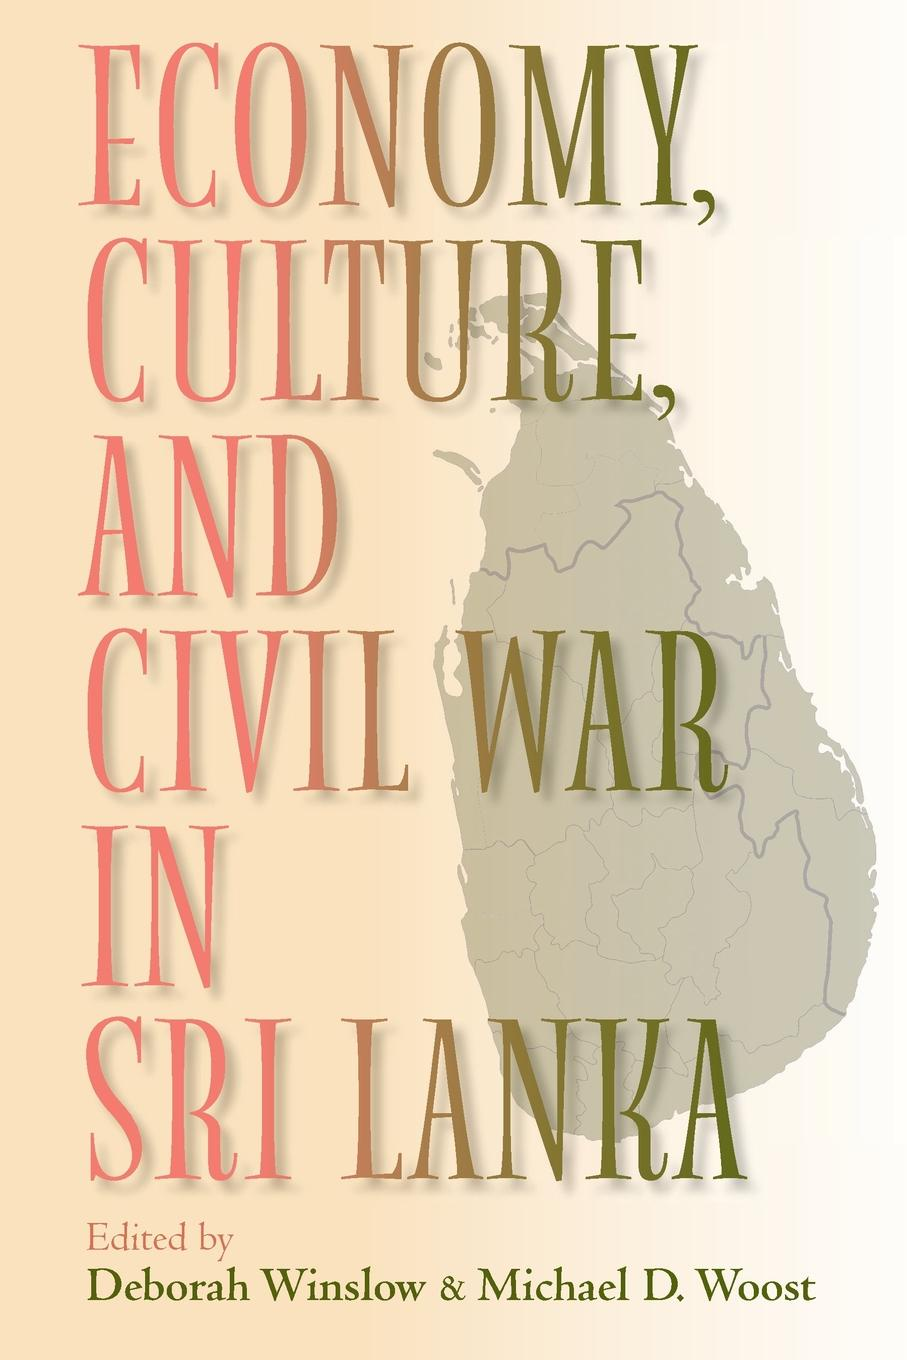 Economy, Culture, and Civil War in Sri Lanka dilan prasad harsha senanayake the influence of the civil war on mahinda rajapaksa s foreign policy in sri lanka during 2005 2015